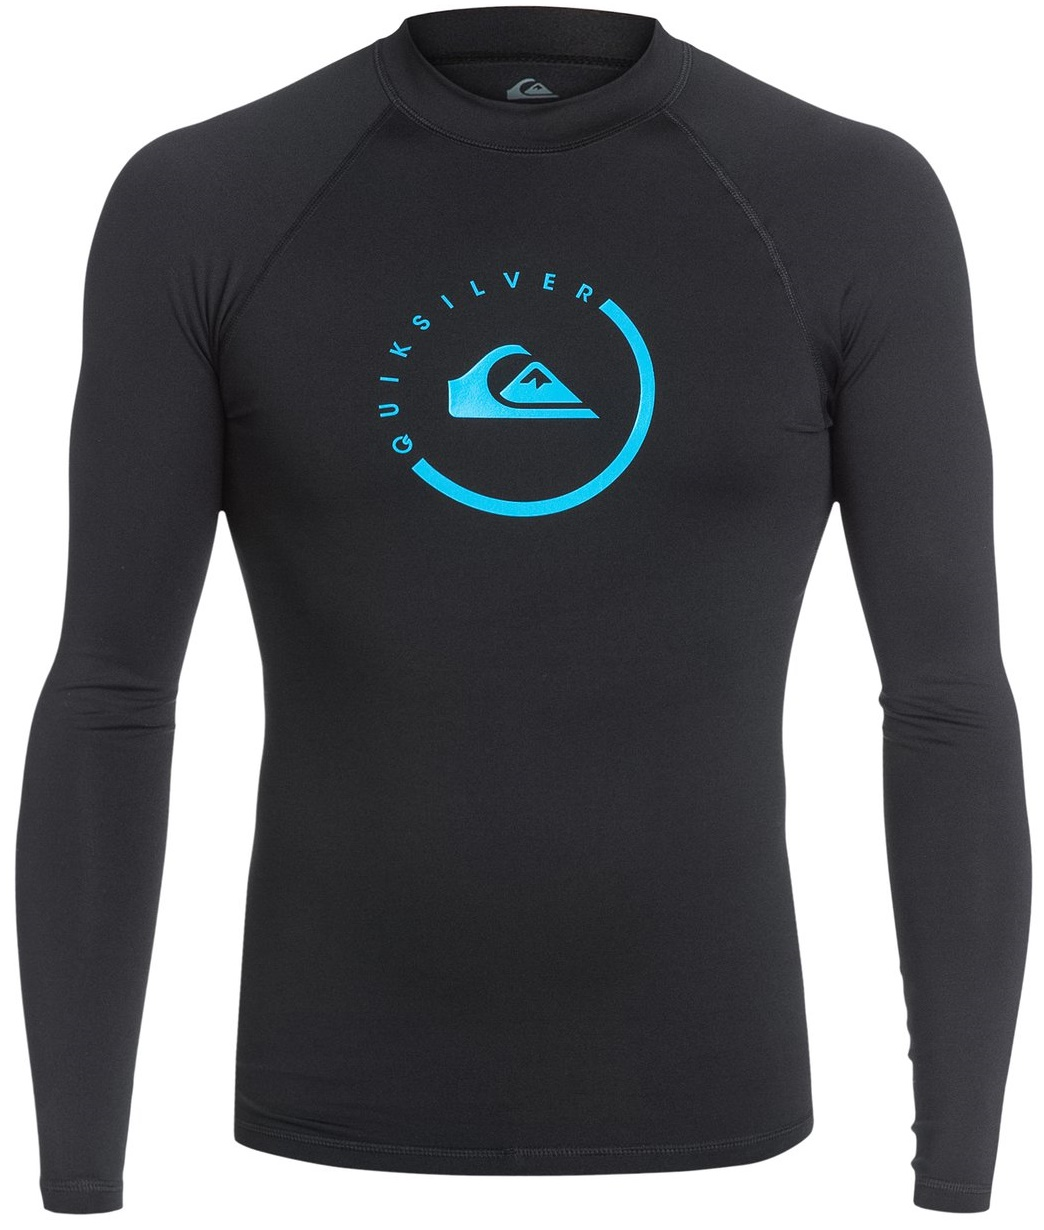 Quiksilver Men's Rashguard Long Sleeve LOCK UP 50+ UV Protection - Black